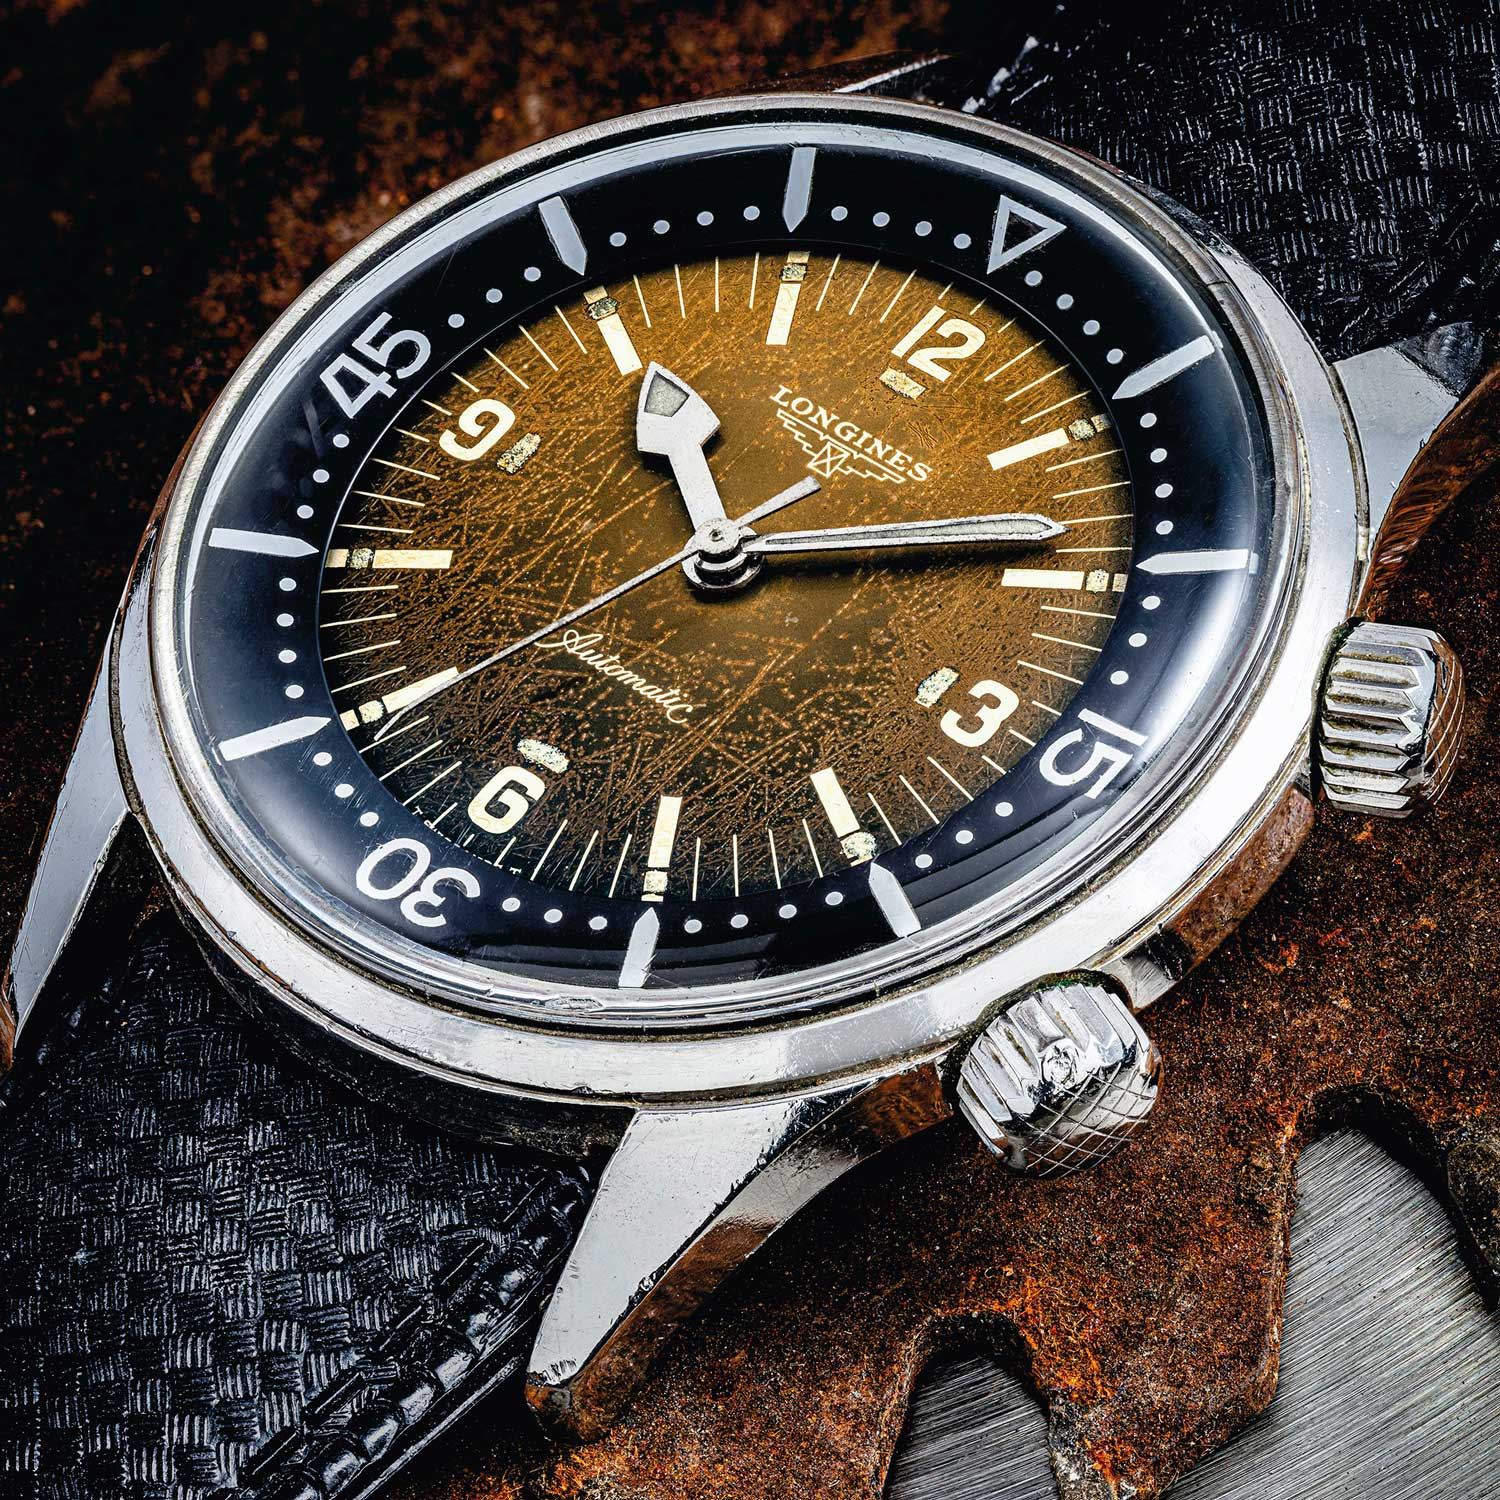 Lot 2366: Longines Diver's Watch with Tropical Dial